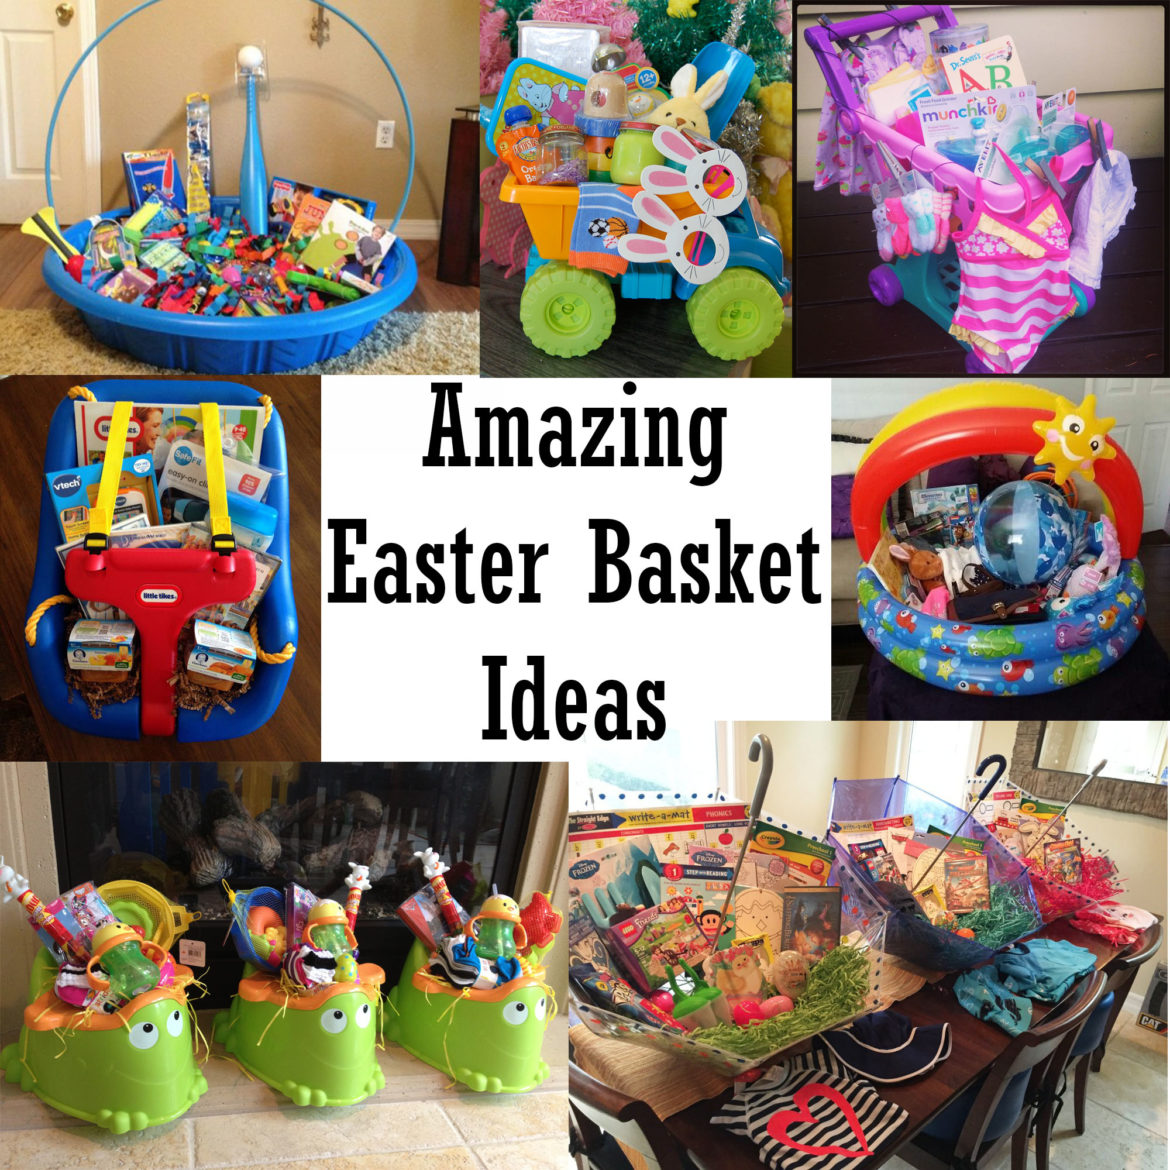 Amazing easter basket ideasg amazing easter basket ideas 8f29d909f5e77db0c7268b65999dfa42 negle